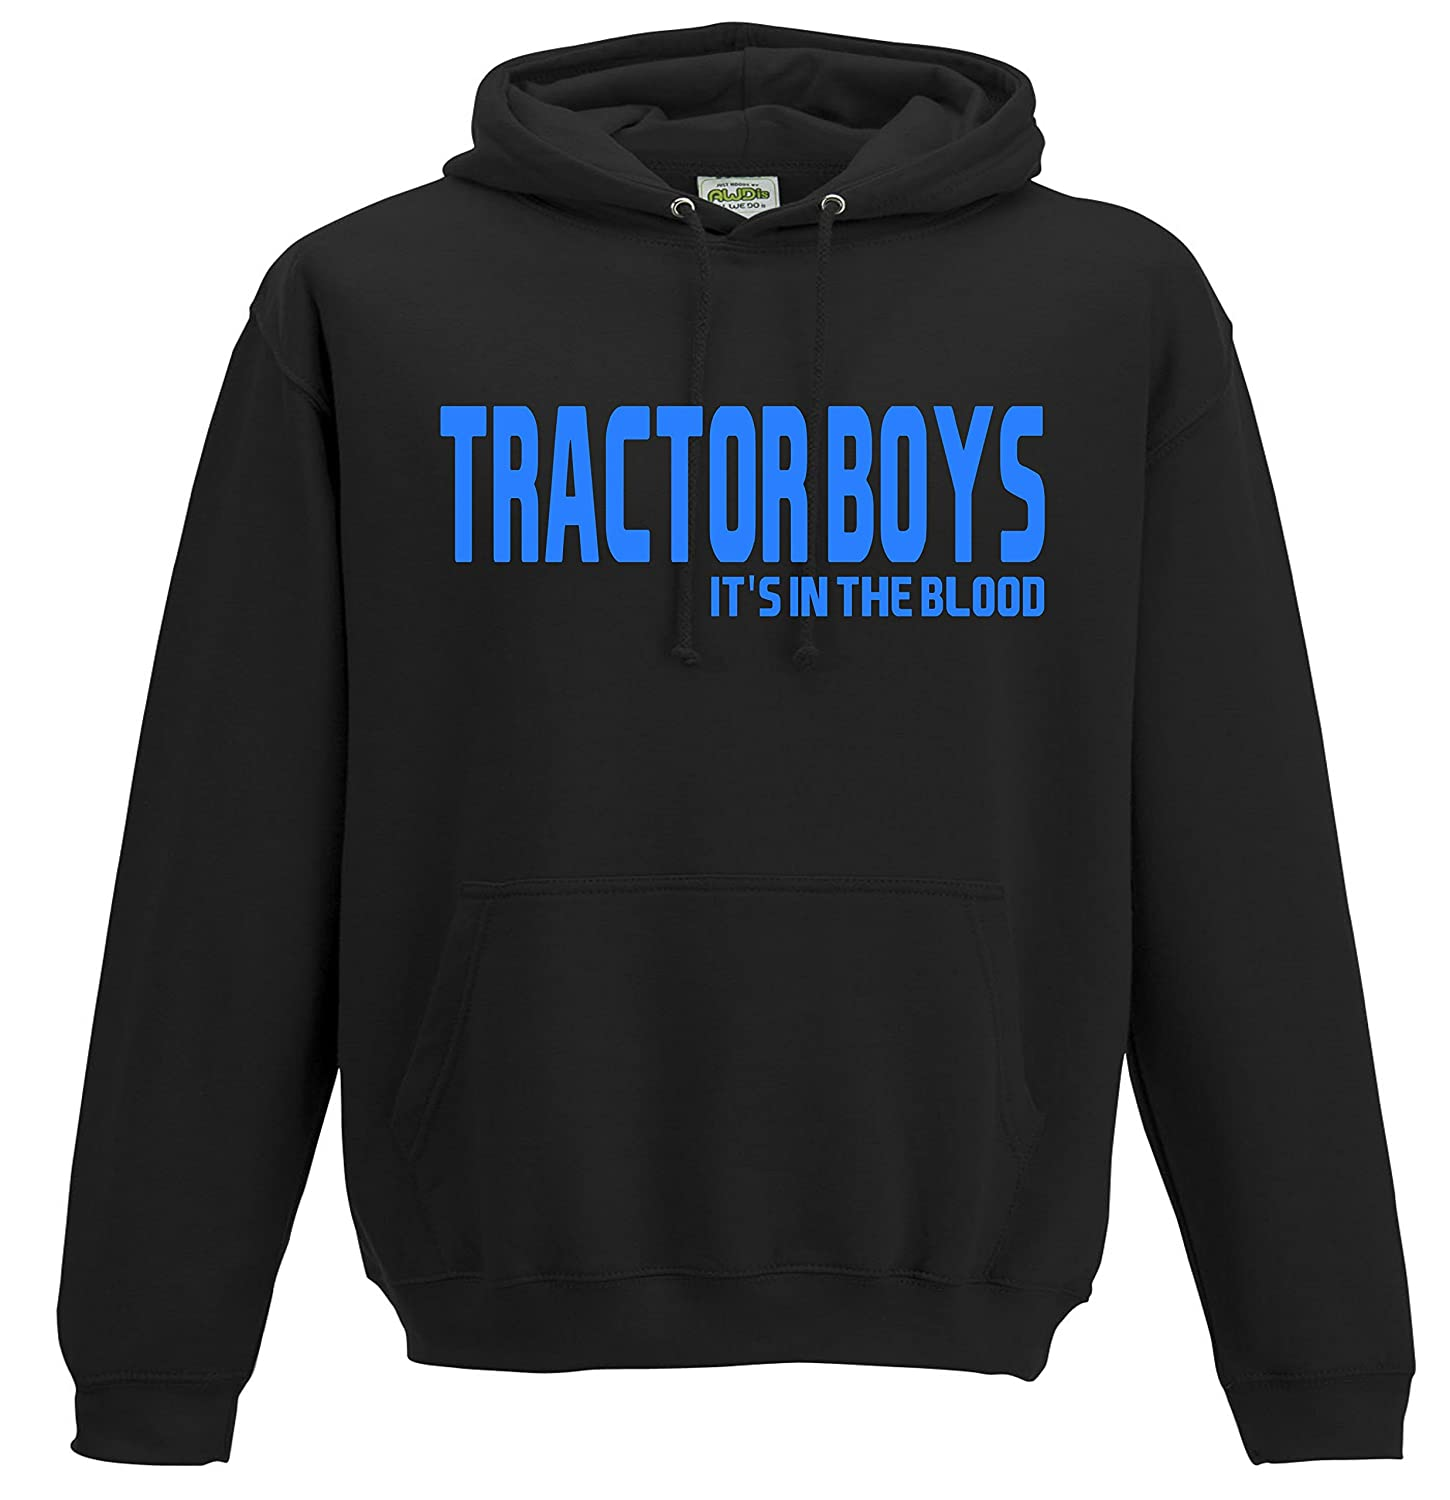 81fdb555395 All About The Print Tractor Boys Ipswich Town Football Gift - Hoodie top  Jumper FC Present JHD110